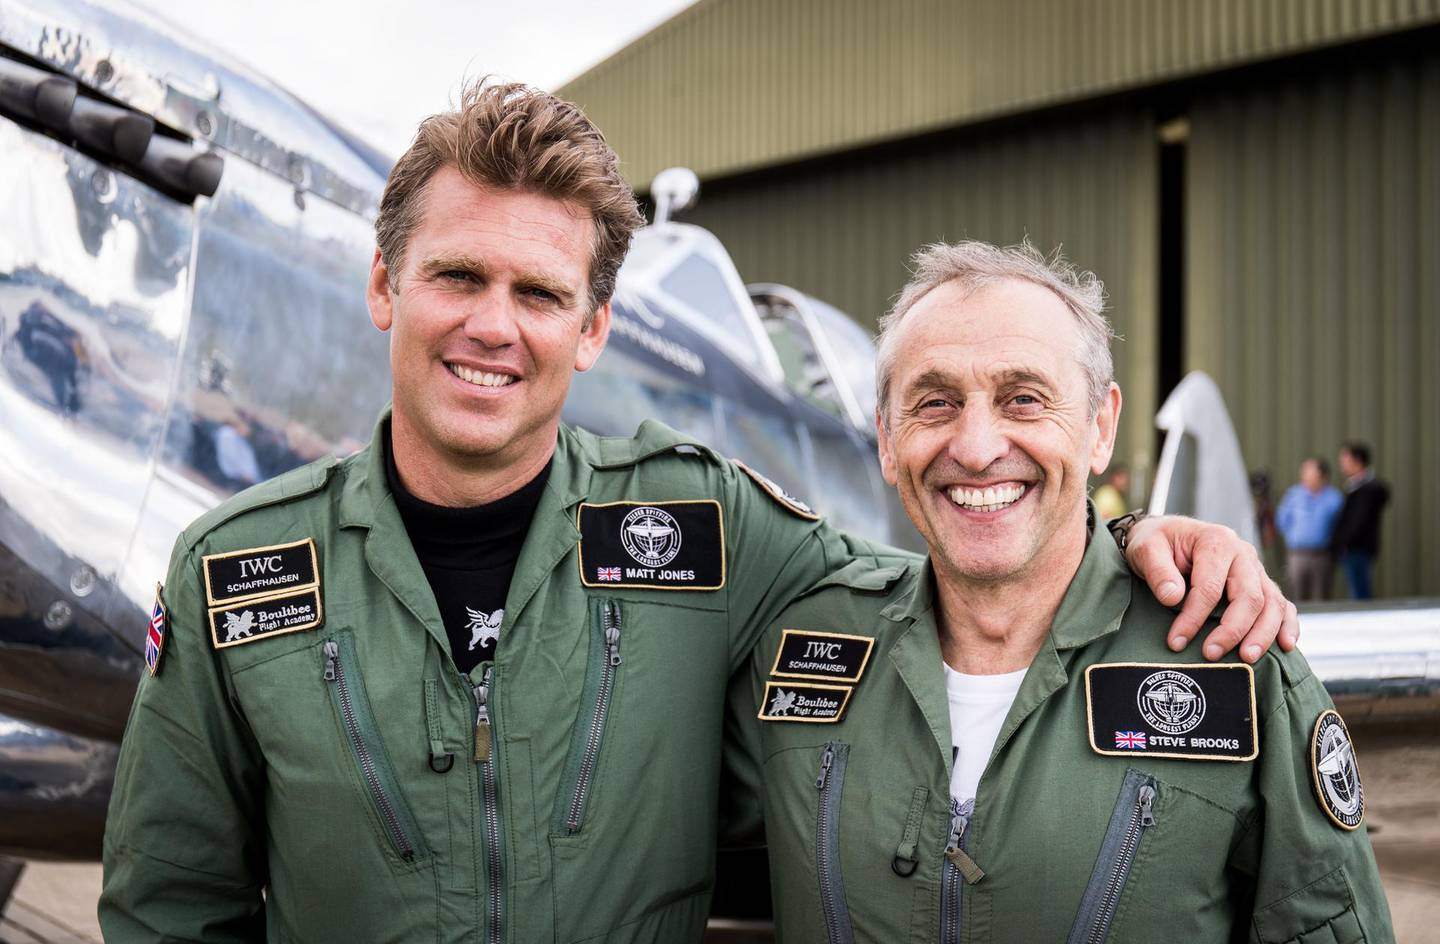 epa07758555 A handout picture provided by the British Ministry of Defence (MOD) showing Matt Jones (L) and Steve Brooks (R) in front of their Silver Spitfire before taking off on their round the world flight, at Goodwood Aerodrome, Hampshire, southern England, 05 August 2019, issued 06 August 2019. The MOD report that in 2019 the two aviators will attempt to fly a Silver Spitfire around the world, taking in some of the most famous landmarks on the planet from the Grand Canyon in the West to the snow-capped peak of Mount Fuji in the East. The Spitfire is a British treasure and an emblem of freedom across the globe. The Silver Spitfire expedition will hopefully promote the 'Best of British' worldwide showcasing the nation's heritage in engineering excellence, and an aircraft that changed the course of history. The Spitfire embodies not only a pinnacle in aerospace engineering and design but commemorates a generation of intrepid aviators prepared to stand up to oppression and make the ultimate sacrifice in pursuit of freedom. The expedition will reunite the Spitfire with the many countries that owe their freedom, at least in part, to this iconic aircraft. The unmistakable sight and sound of this aircraft once again gracing the skies aims to inspire future generations more than eighty years after R.J. Mitchell's timeless design first graced the skies.  EPA/SAC ED WRIGHT RAF / BRITISH MINISTRY OF DEFENCE / HANDOUT MANDATORY CREDIT: MOD/CROWN COPYRIGHT HANDOUT EDITORIAL USE ONLY/NO SALES